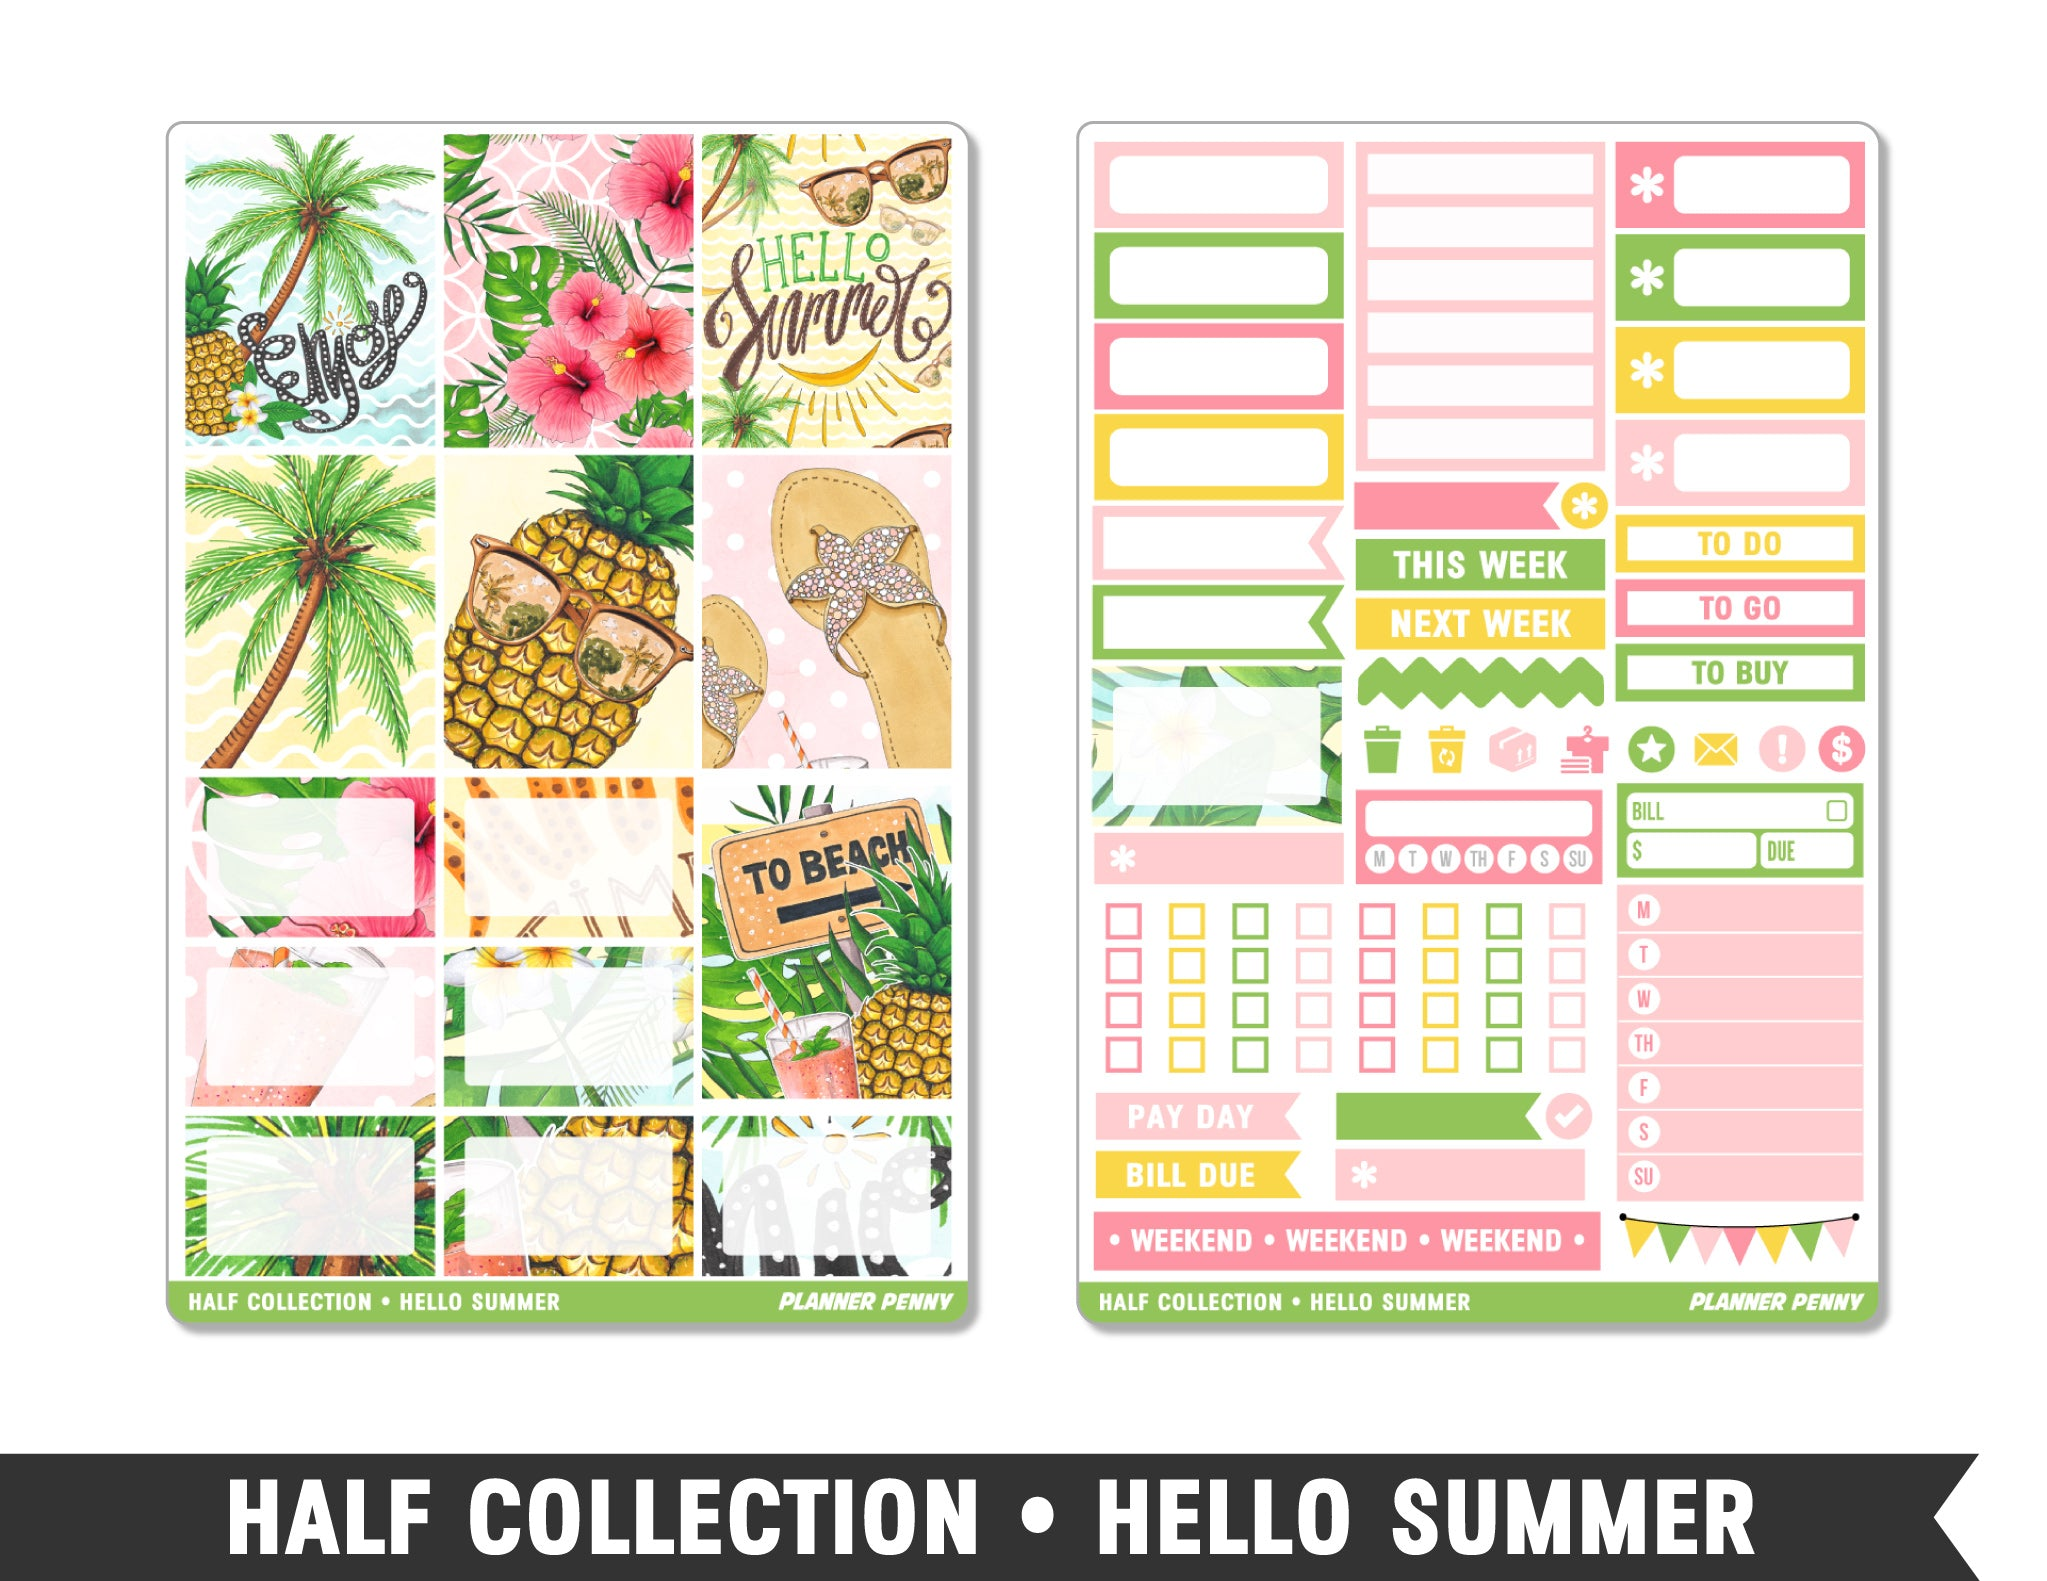 Half Collection • Hello Summer • Weekly Spread Planner Stickers - Planner Penny